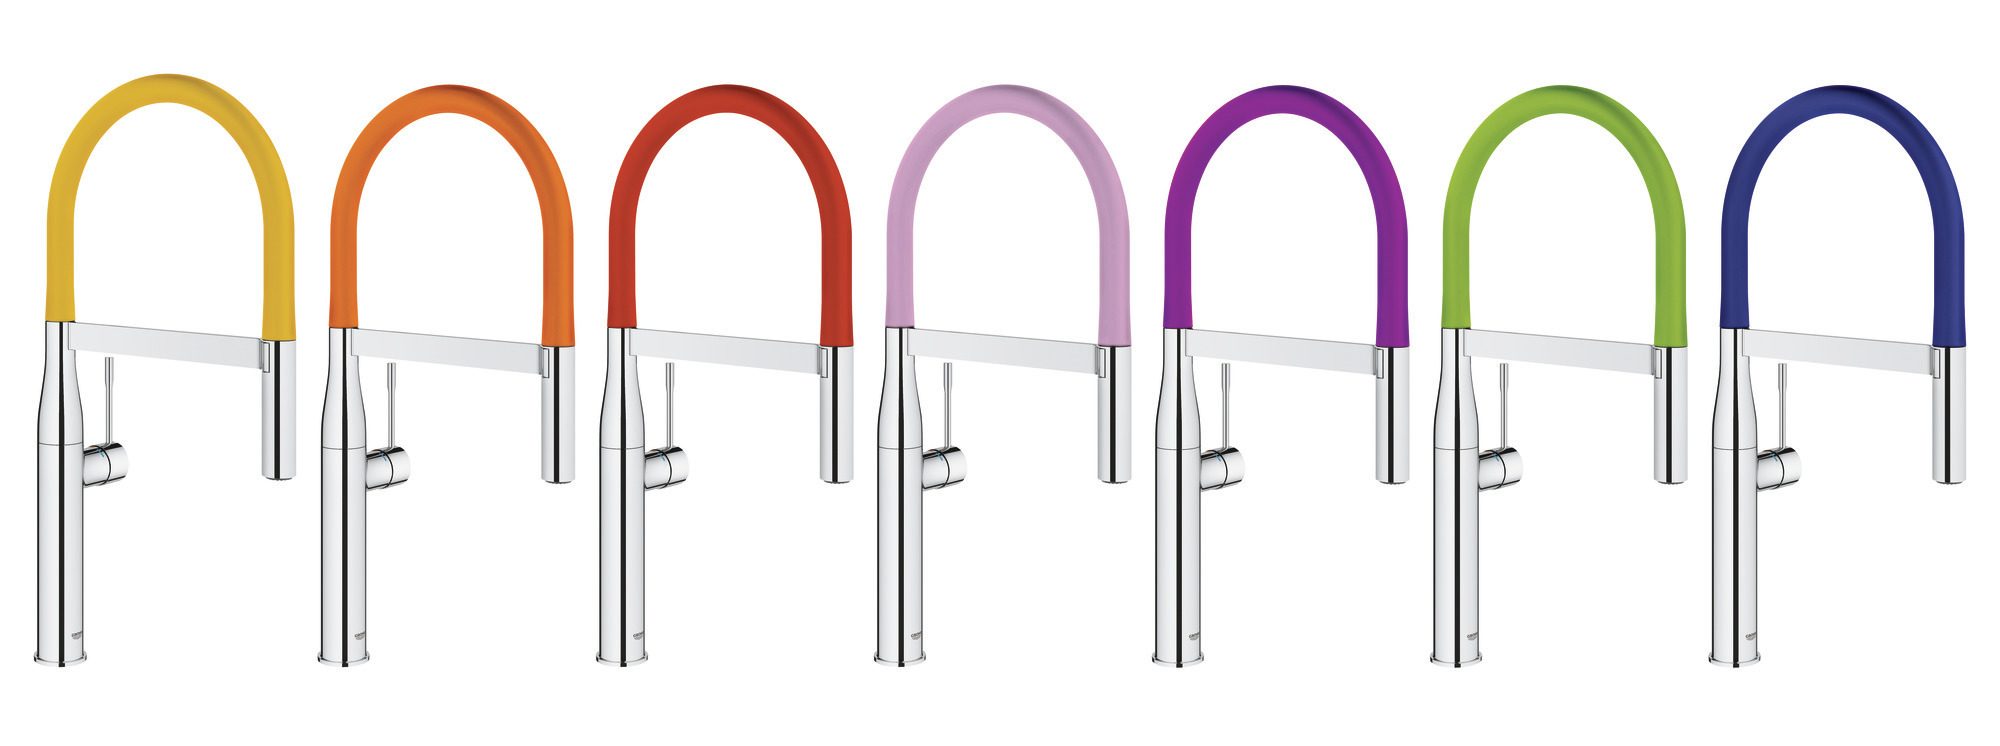 Grohe Launches Colorful Faucet Collection Builder Magazine